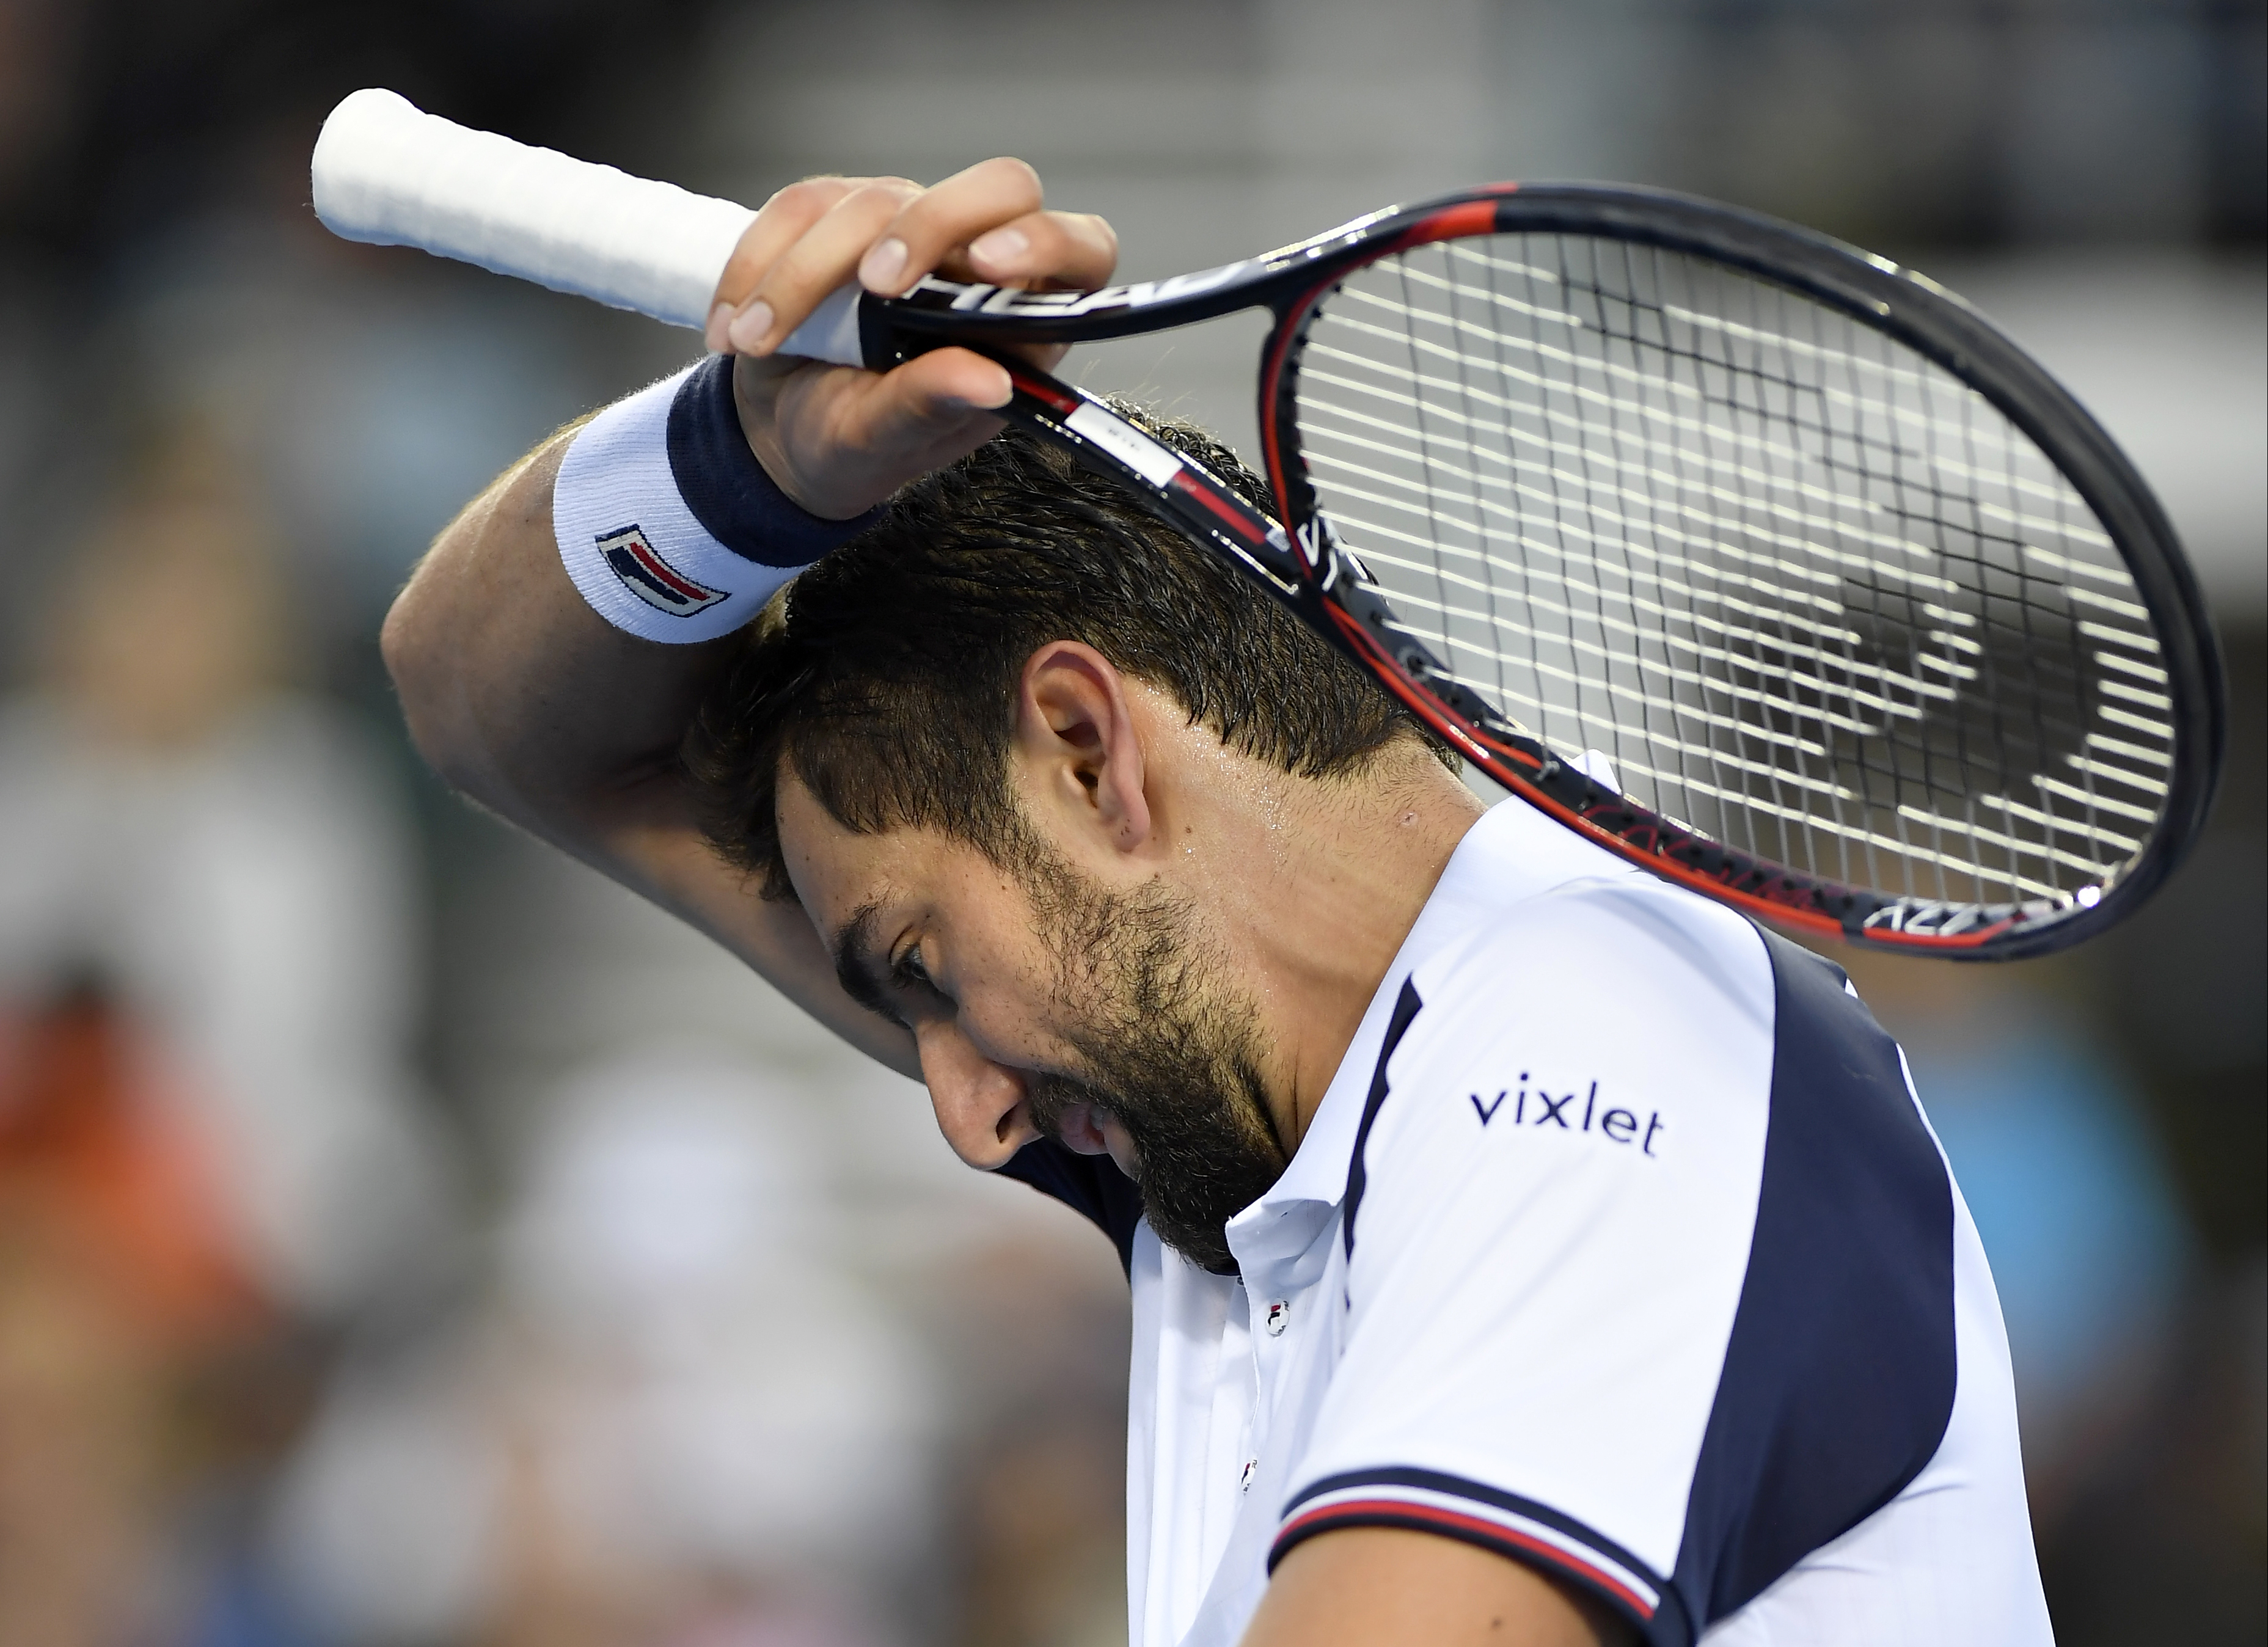 Croatia's Marin Cilic wipes the sweat from his face during his second round match against Britain's Daniel Evans at the Australian Open tennis championships in Melbourne, Australia, Wednesday, Jan. 18, 2017. (AP Photo/Andy Brownbill)